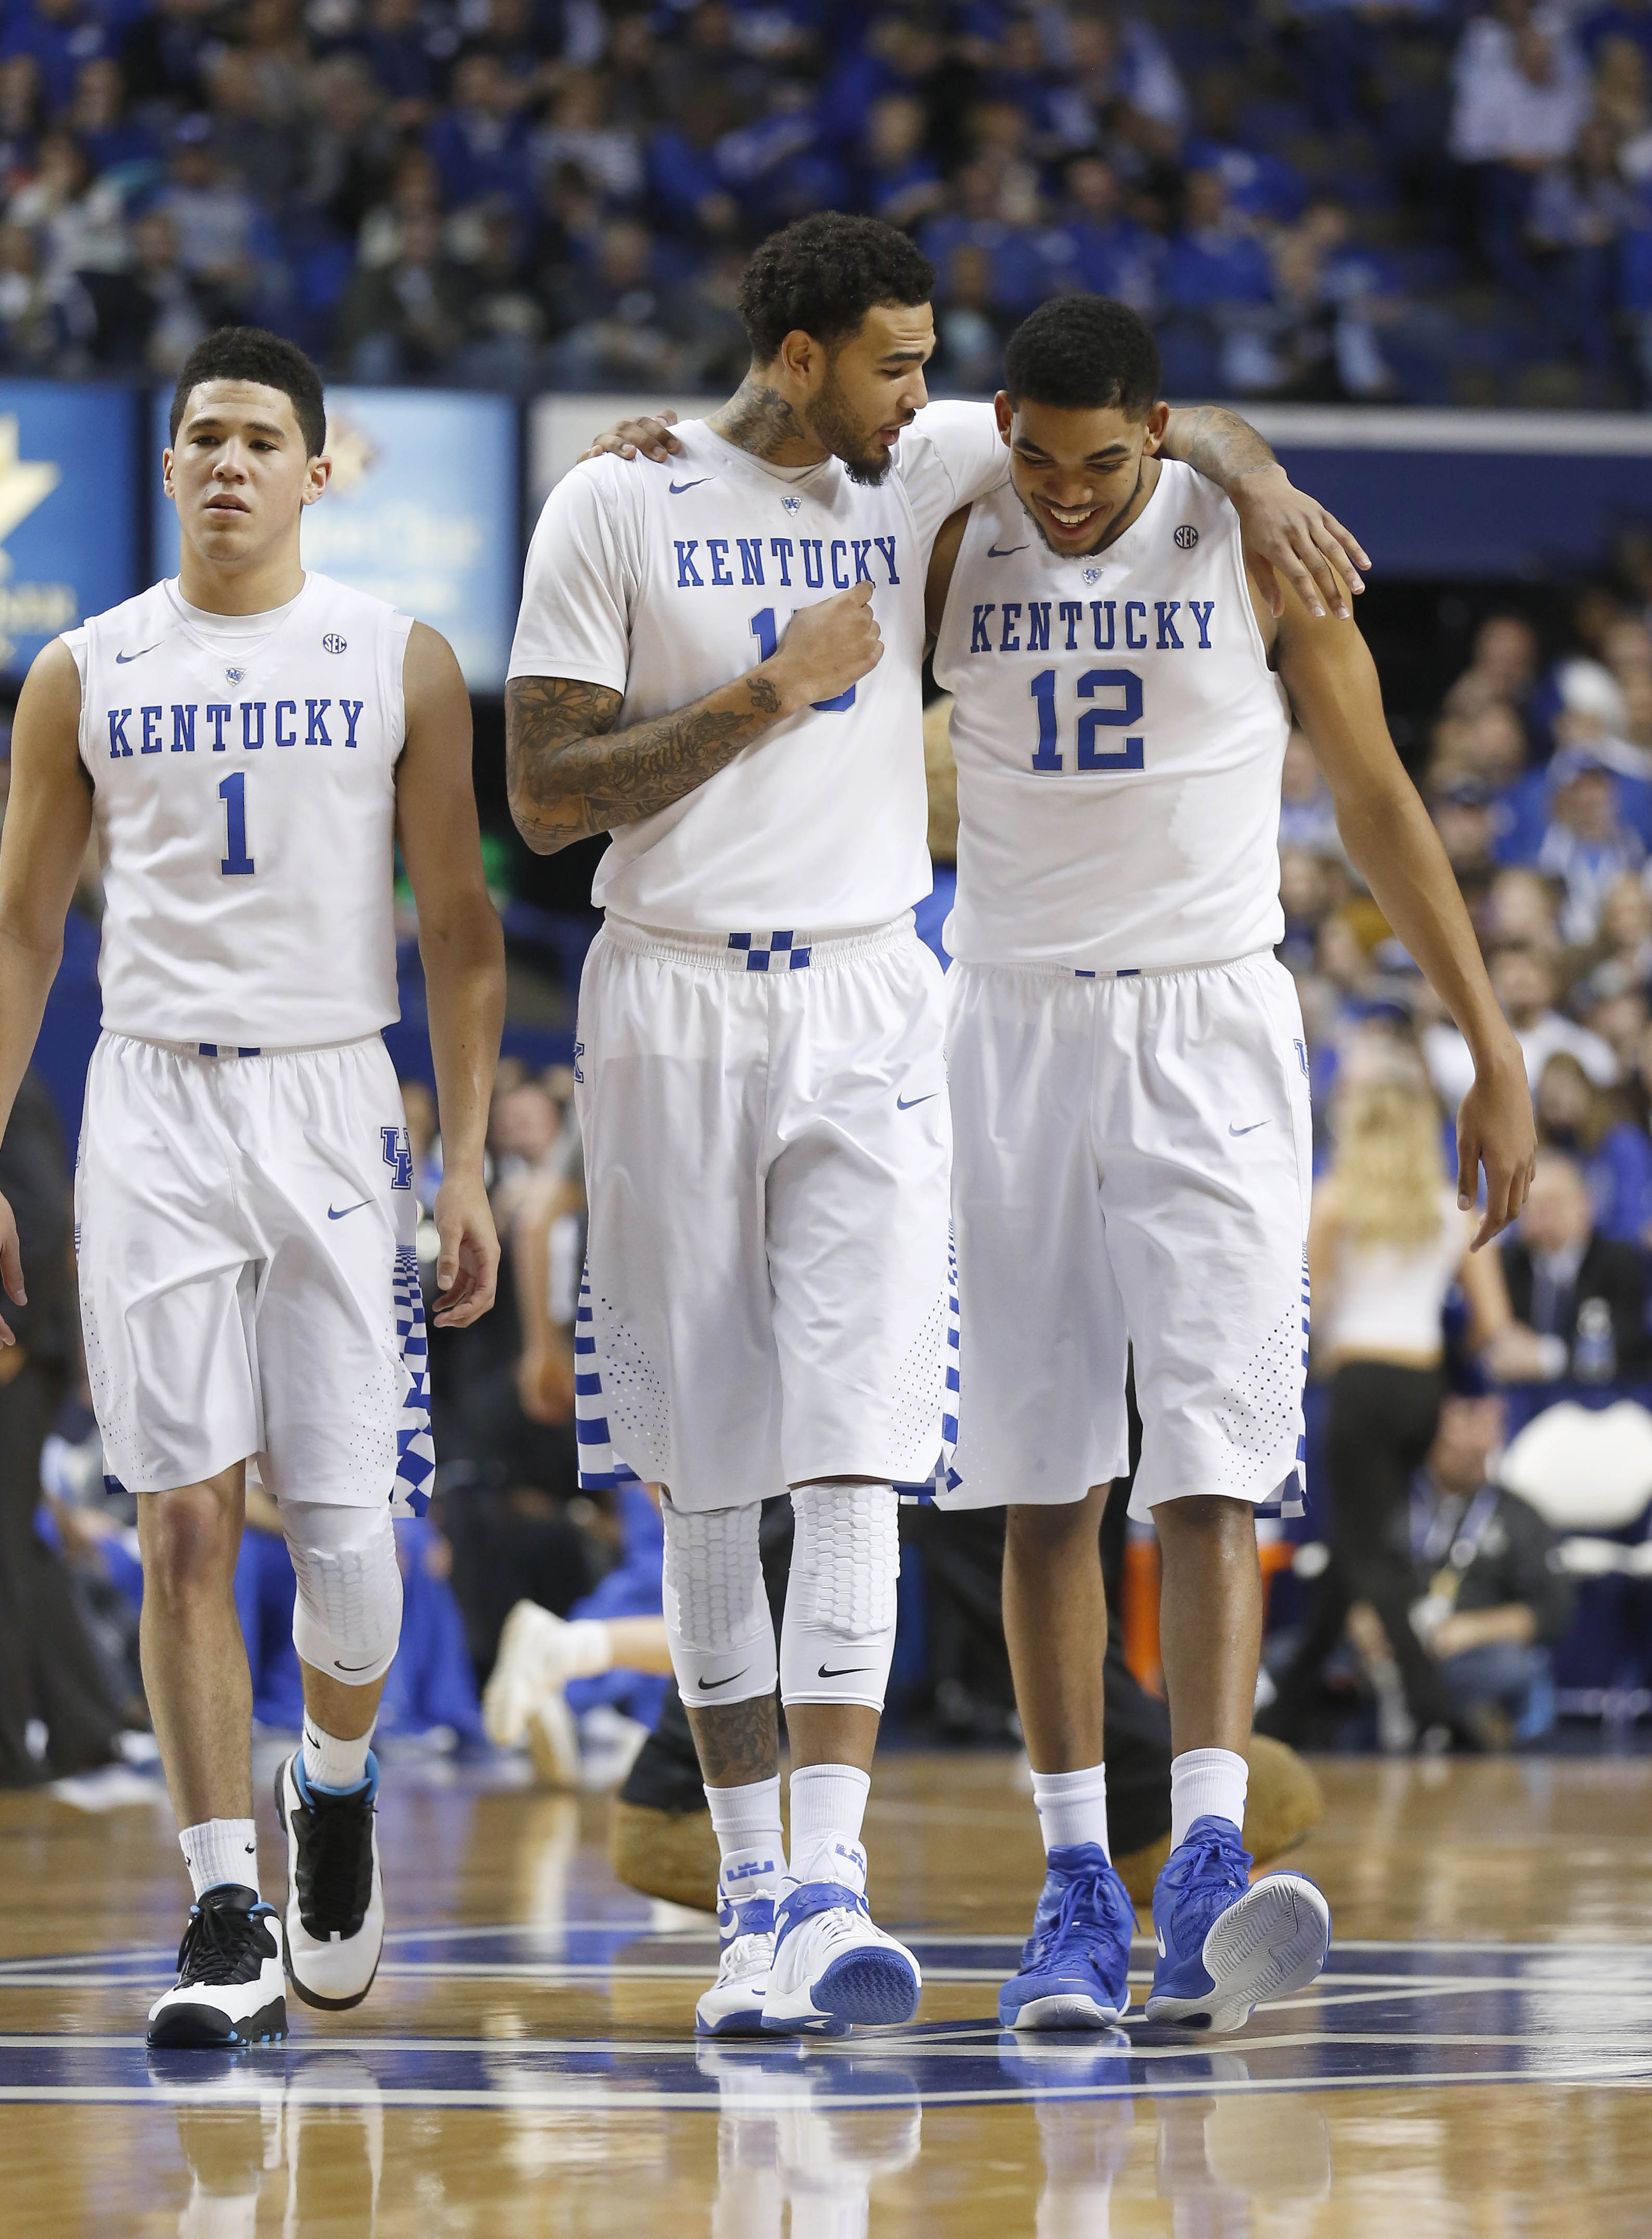 Bracketology: A first look at who's locked in